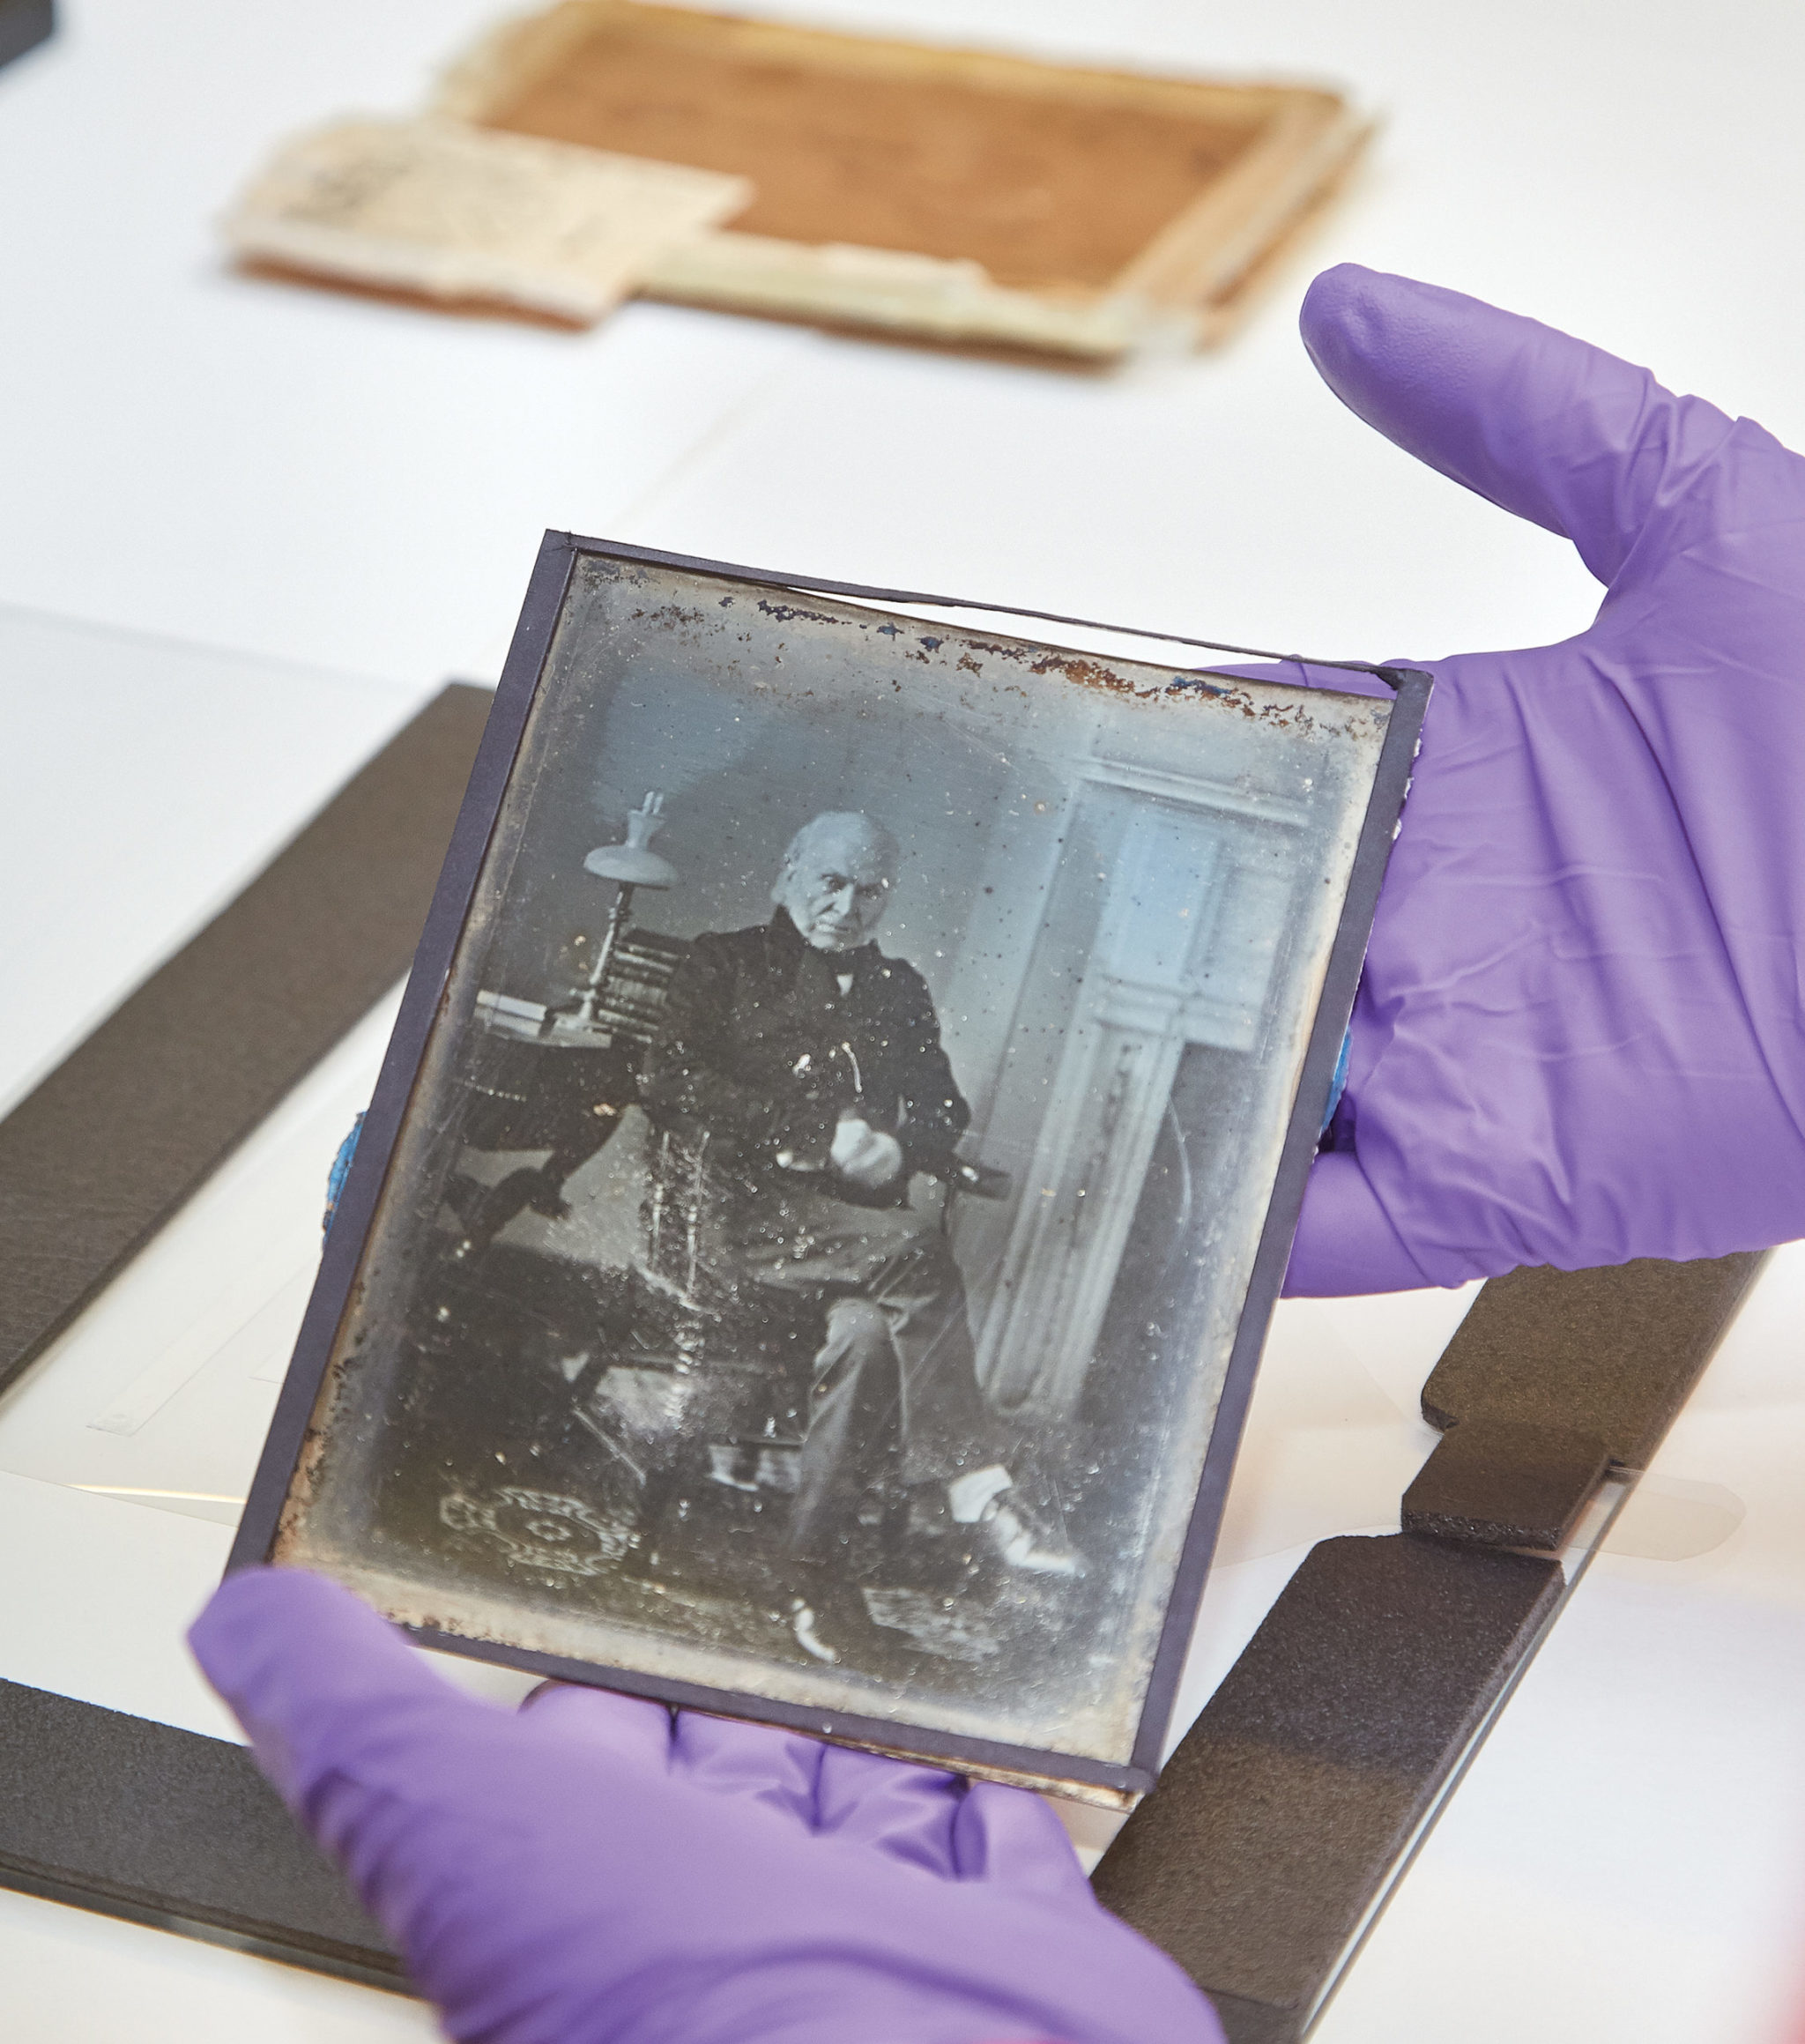 A museum conservator holds the 1843 Adams photograph. Photograph by Jeff Elkins.